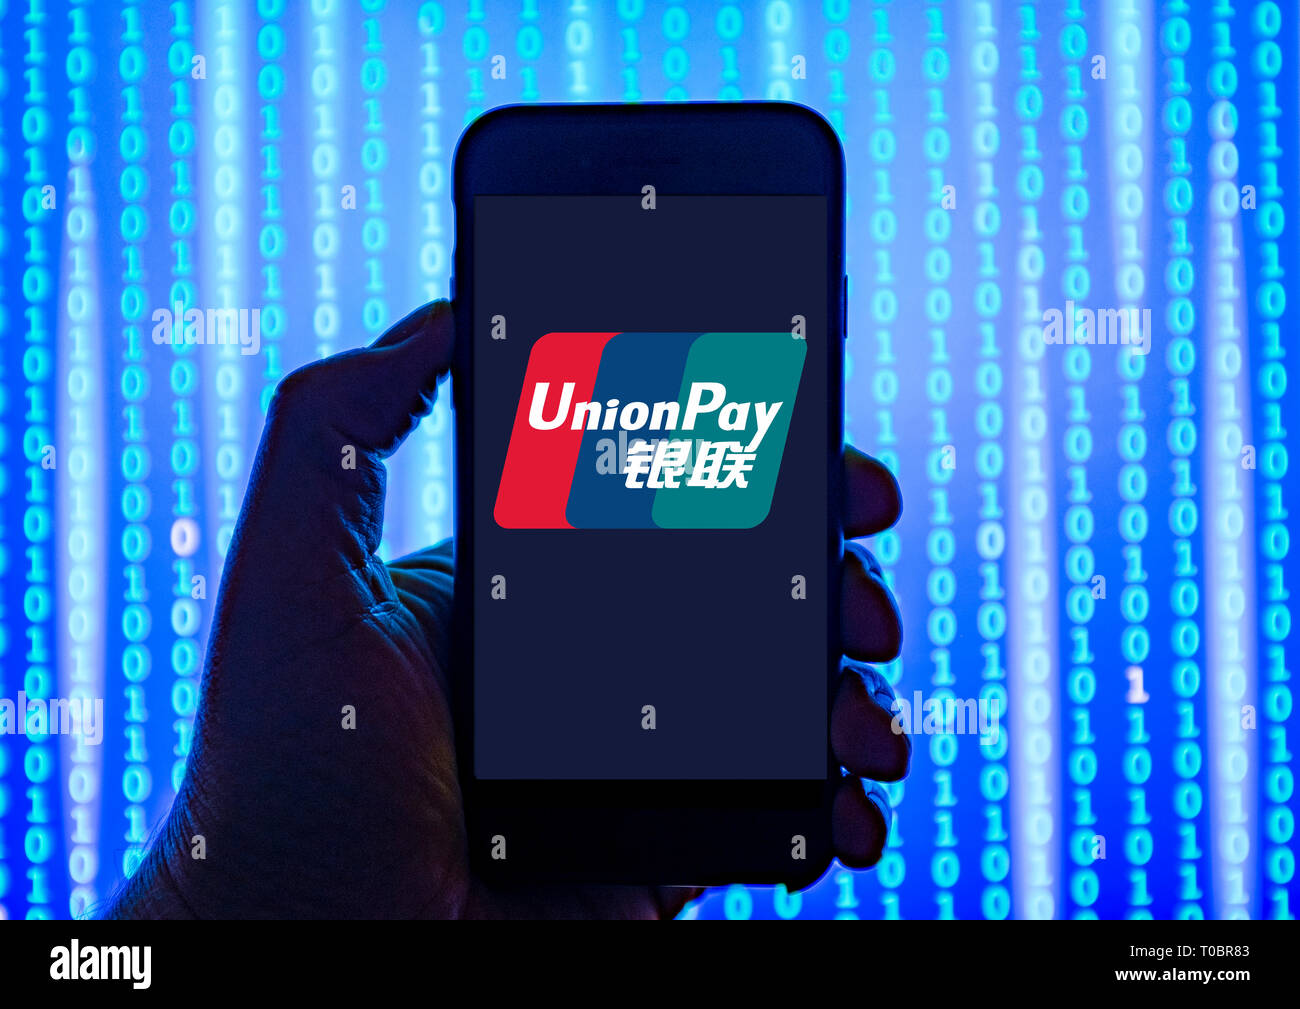 Person holding smart phone with UnionPay logo displayed on the screen. UnionPay fis a Chinese financial services corporation - Stock Image